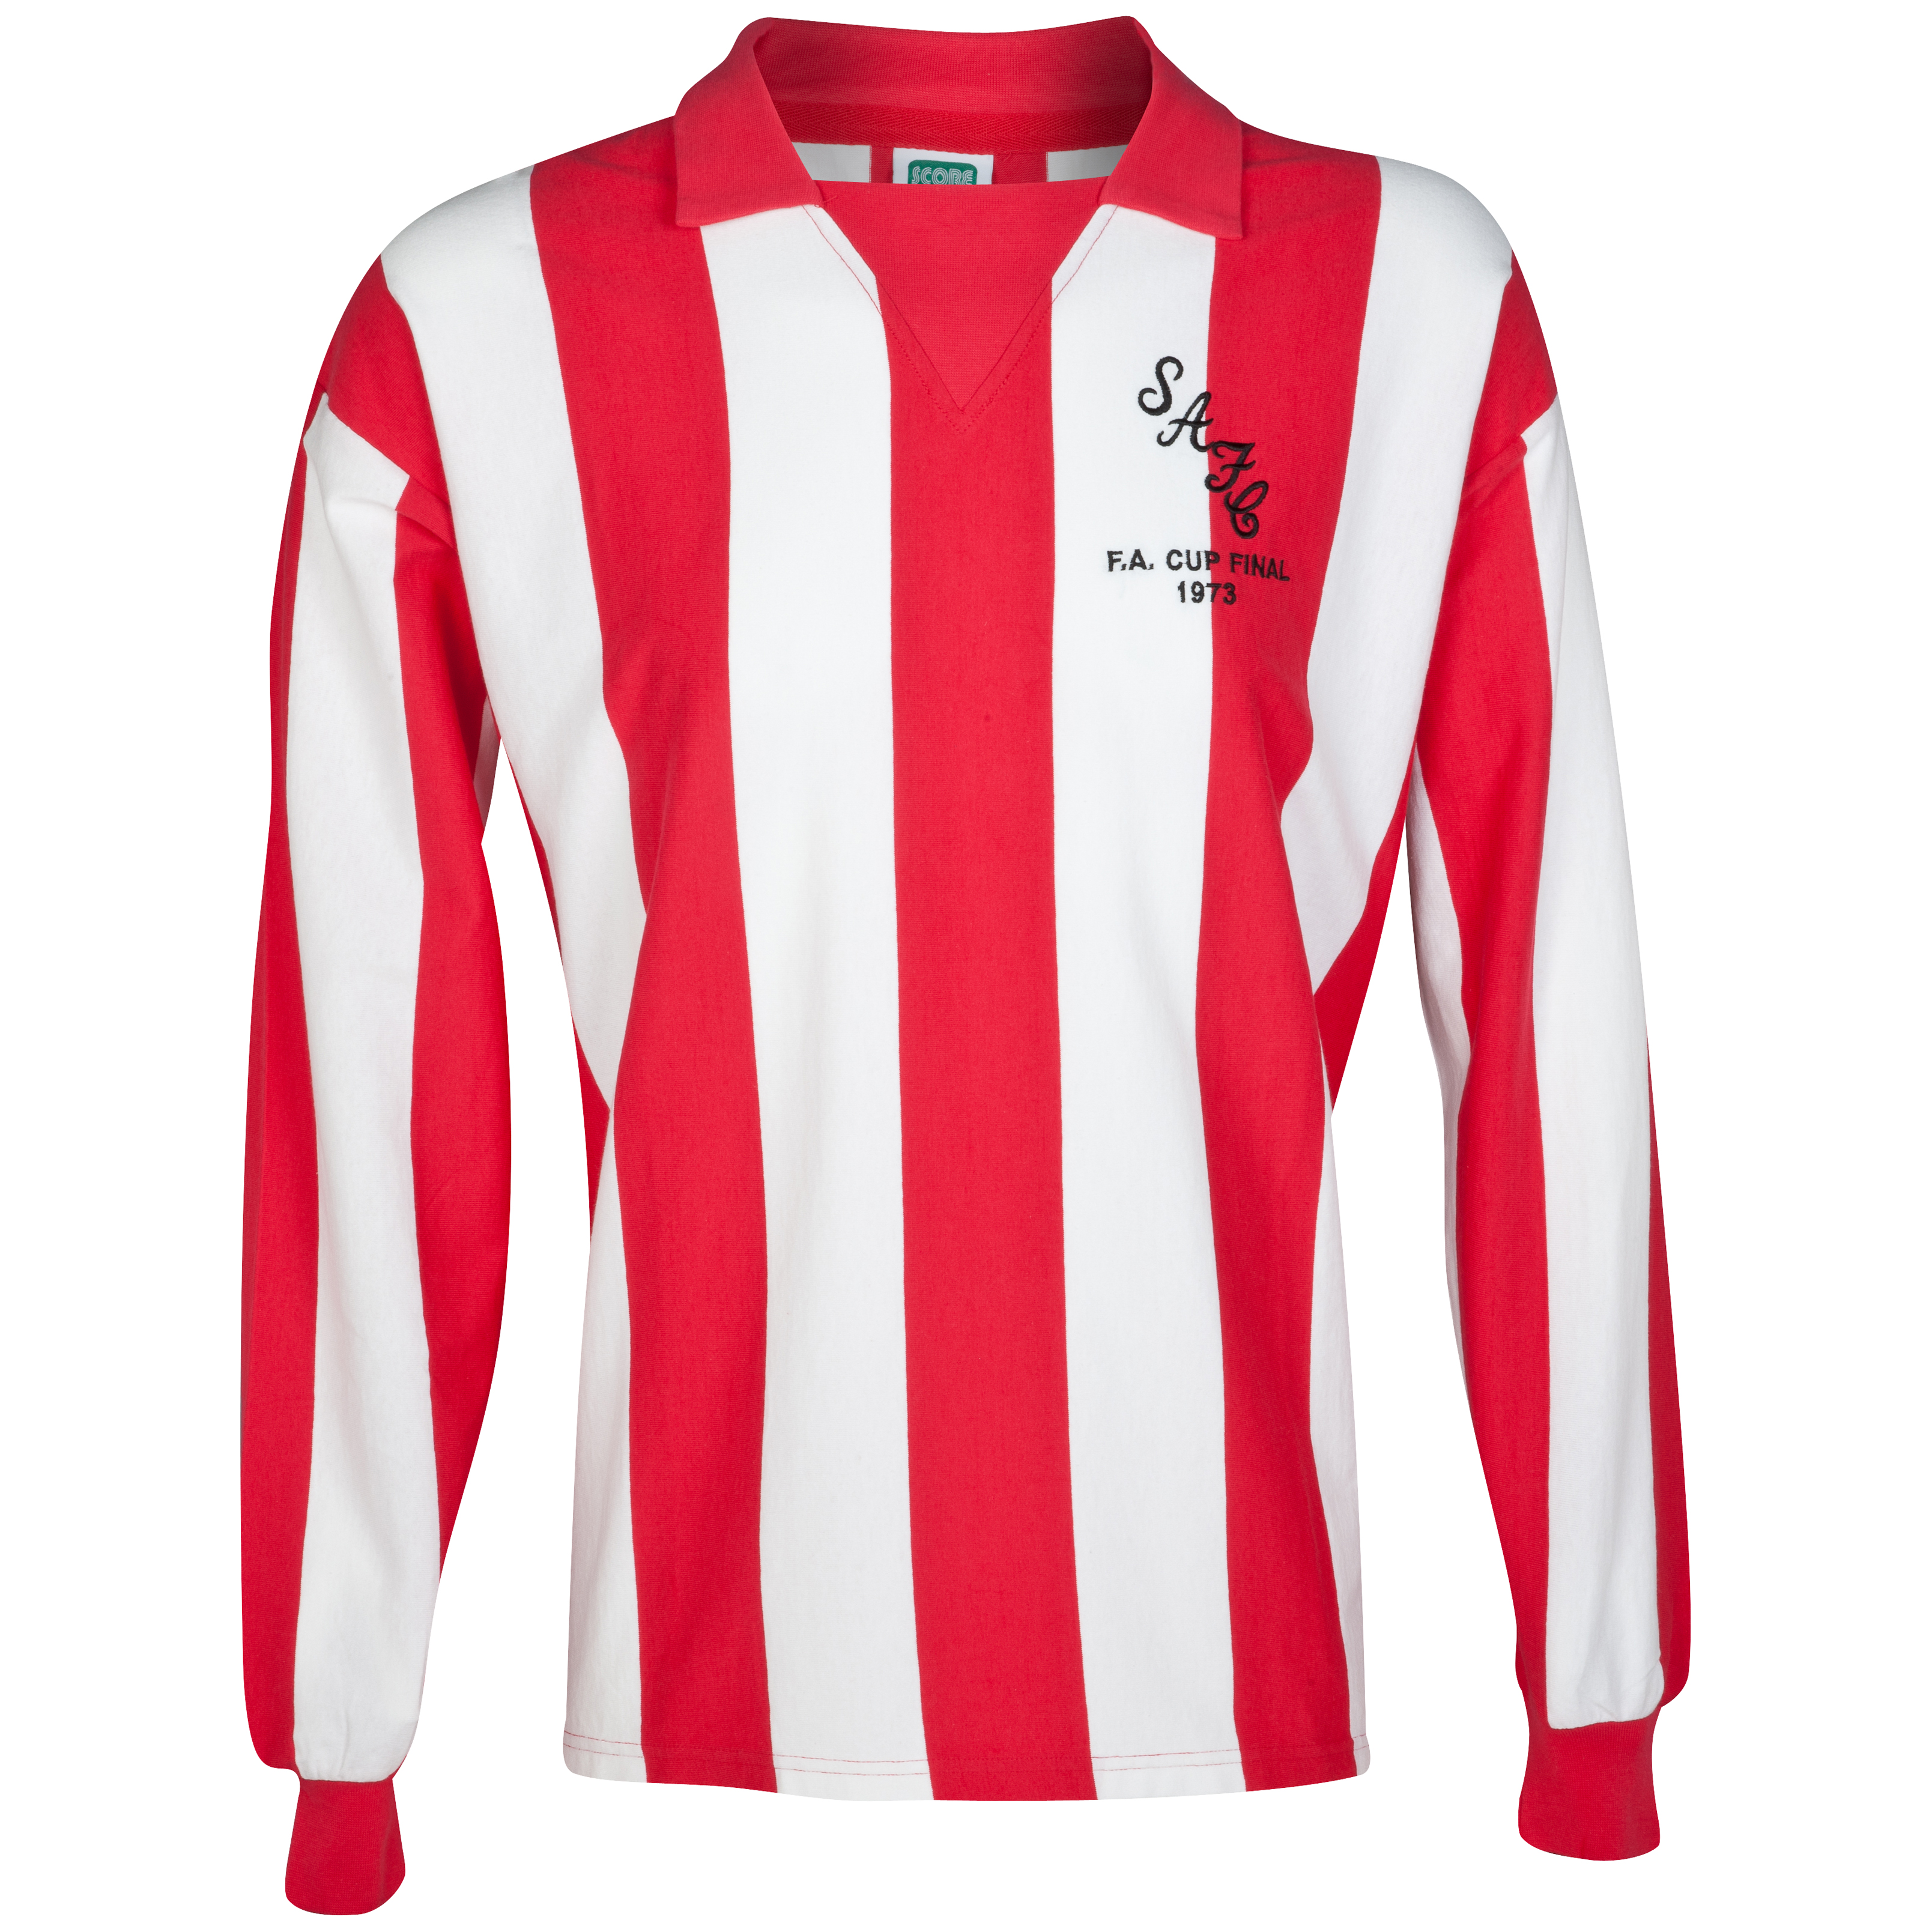 Sunderland 73 Final Shirt - Long Sleeve